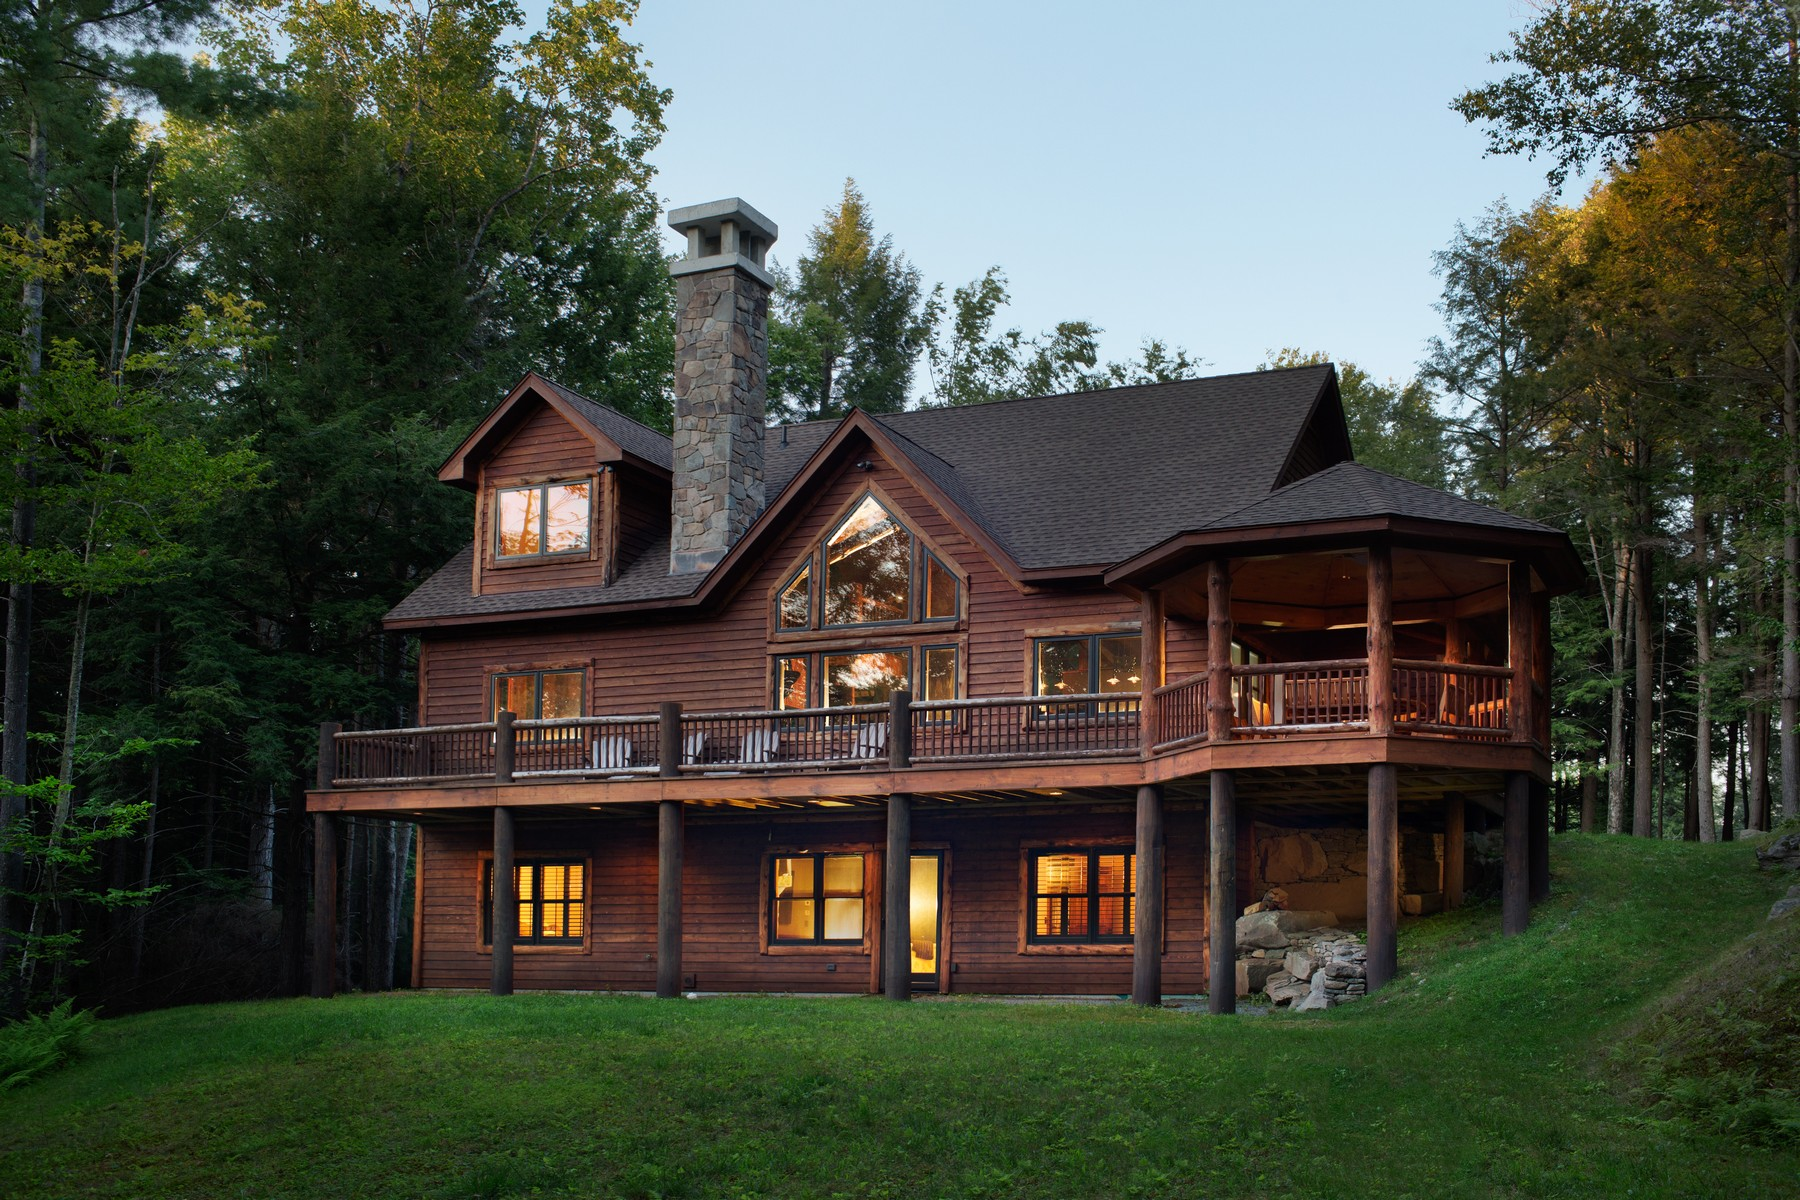 Casa Unifamiliar por un Venta en White Pine Lodge at The Chapin Estate 340 Woodstone Trail White Lake, Nueva York 12786 Estados Unidos